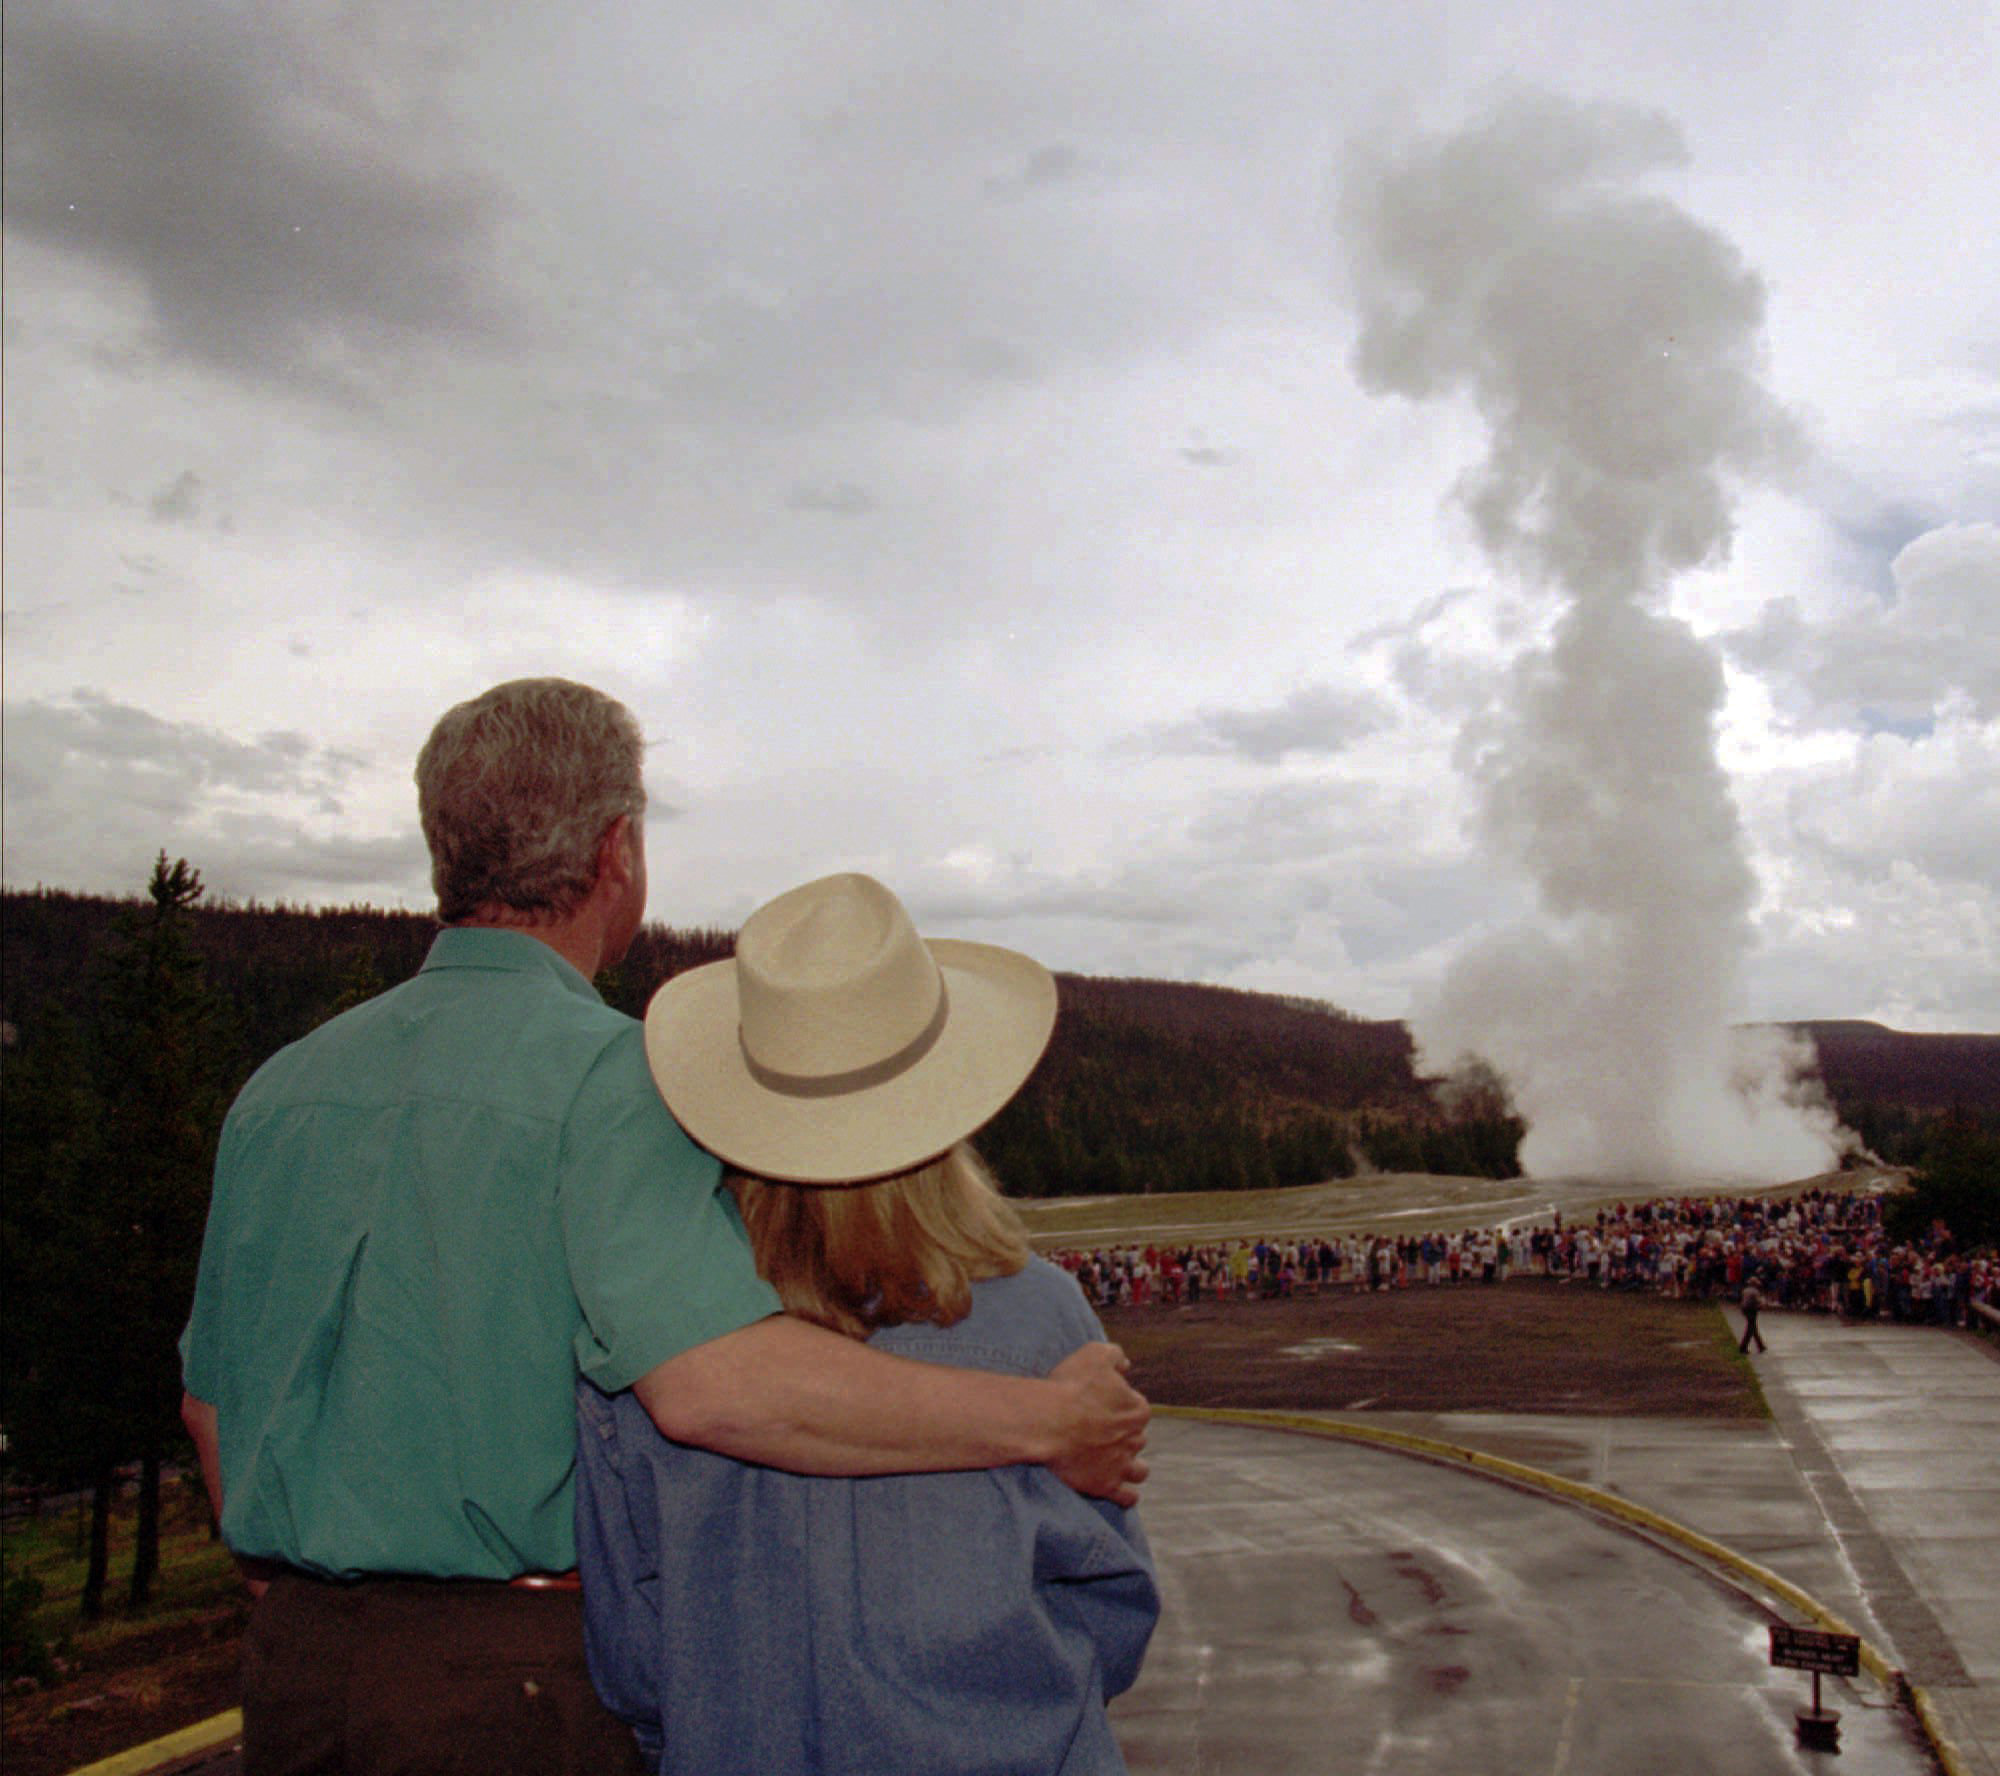 President Bill Clinton puts an arm around his wife, Hillary Clinton, while watching Old Faithful erupt at Yellowstone National Park, Wyo., on Aug. 25, 1995. The first family visited several Yellowstone sites while on vacation.